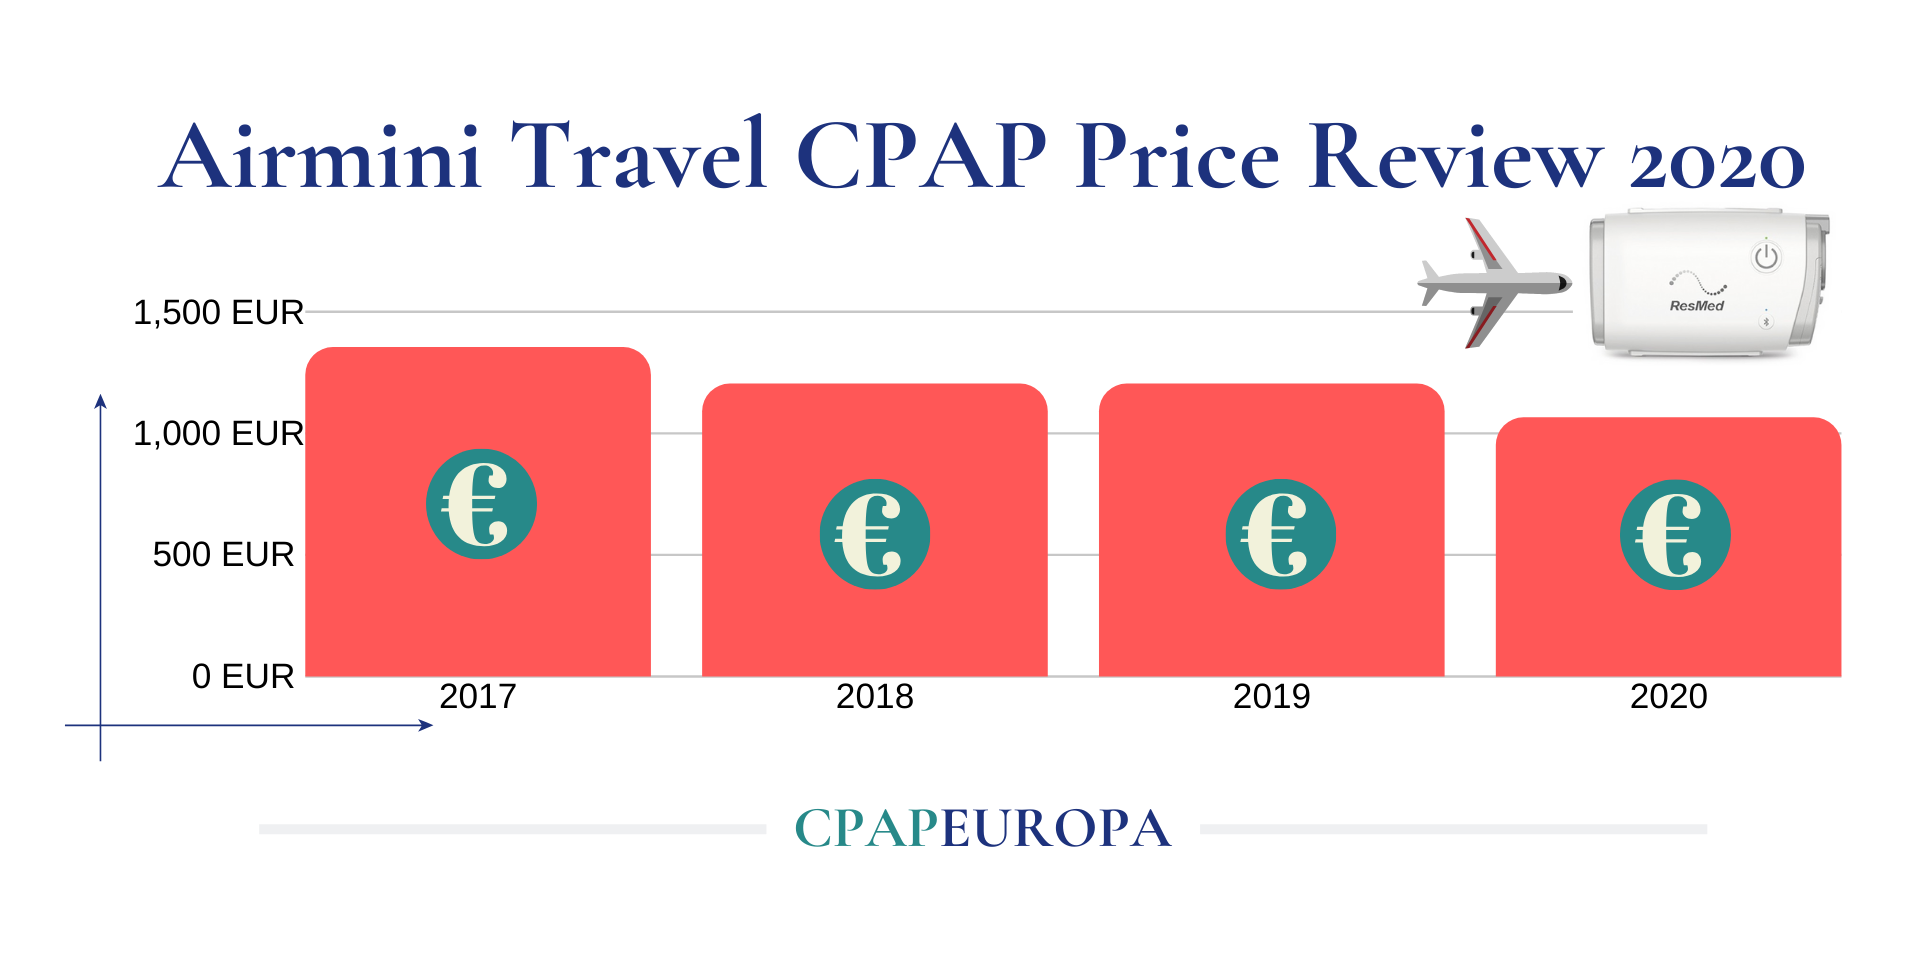 Resmed Travel CPAP Price Review